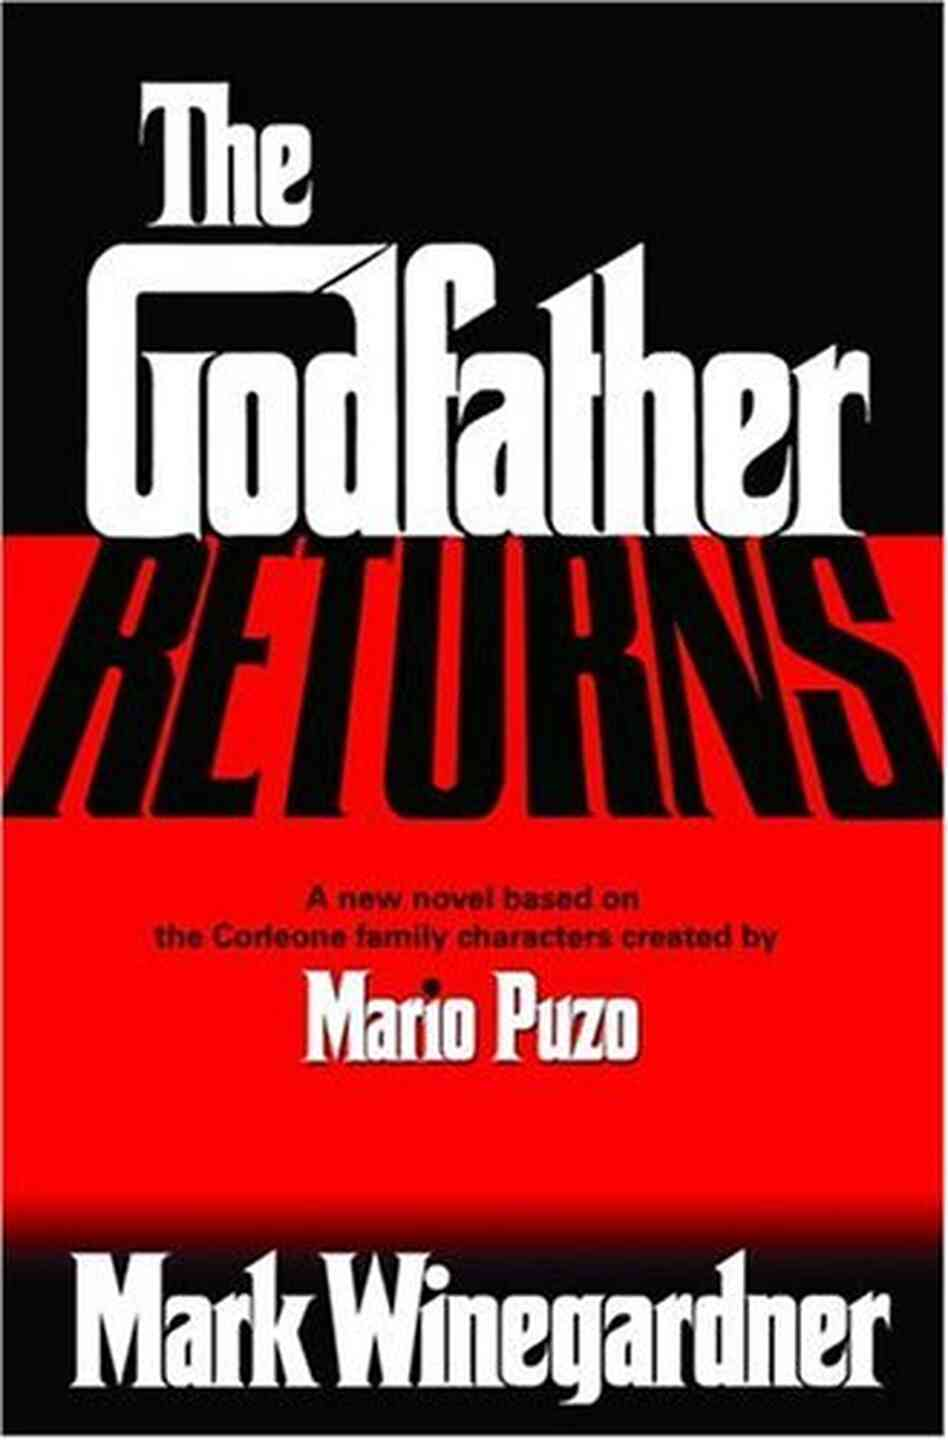 a literary analysis of the godfather by mario puzo This one-page guide includes a plot summary and brief analysis of the godfather by mario puzo the godfather by italian-american author mario puzo follows one man's descent into becoming the head of a sicilian mob the novel was adapted for the screen in 1969, winning several academy awards, including one for puzo (best adapted screenplay.